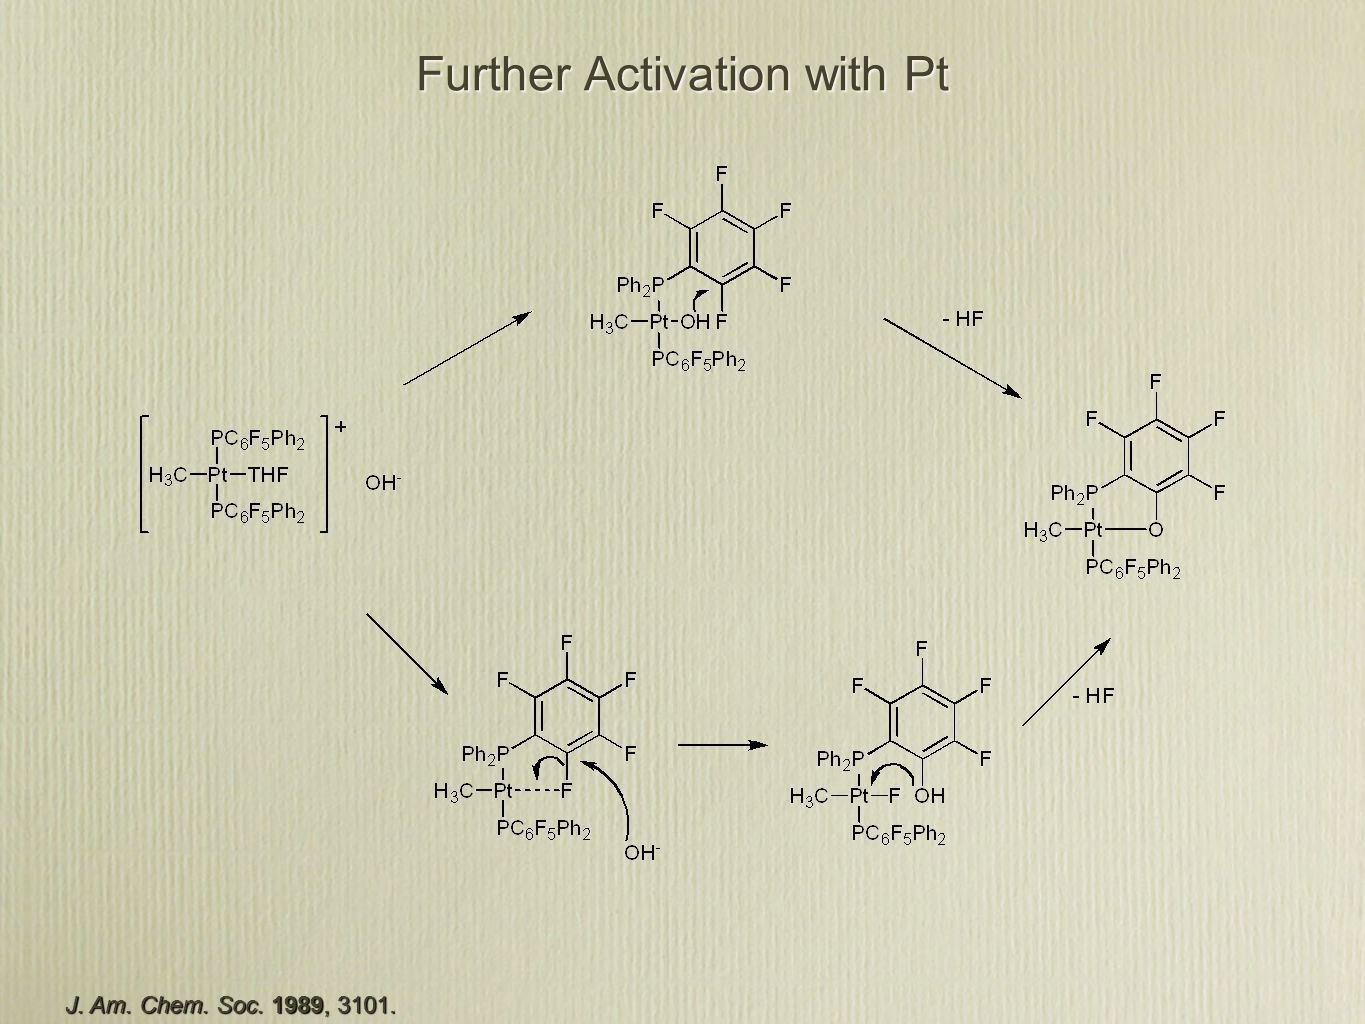 Further Activation with Pt J. Am. Chem. Soc. 1989, 3101.